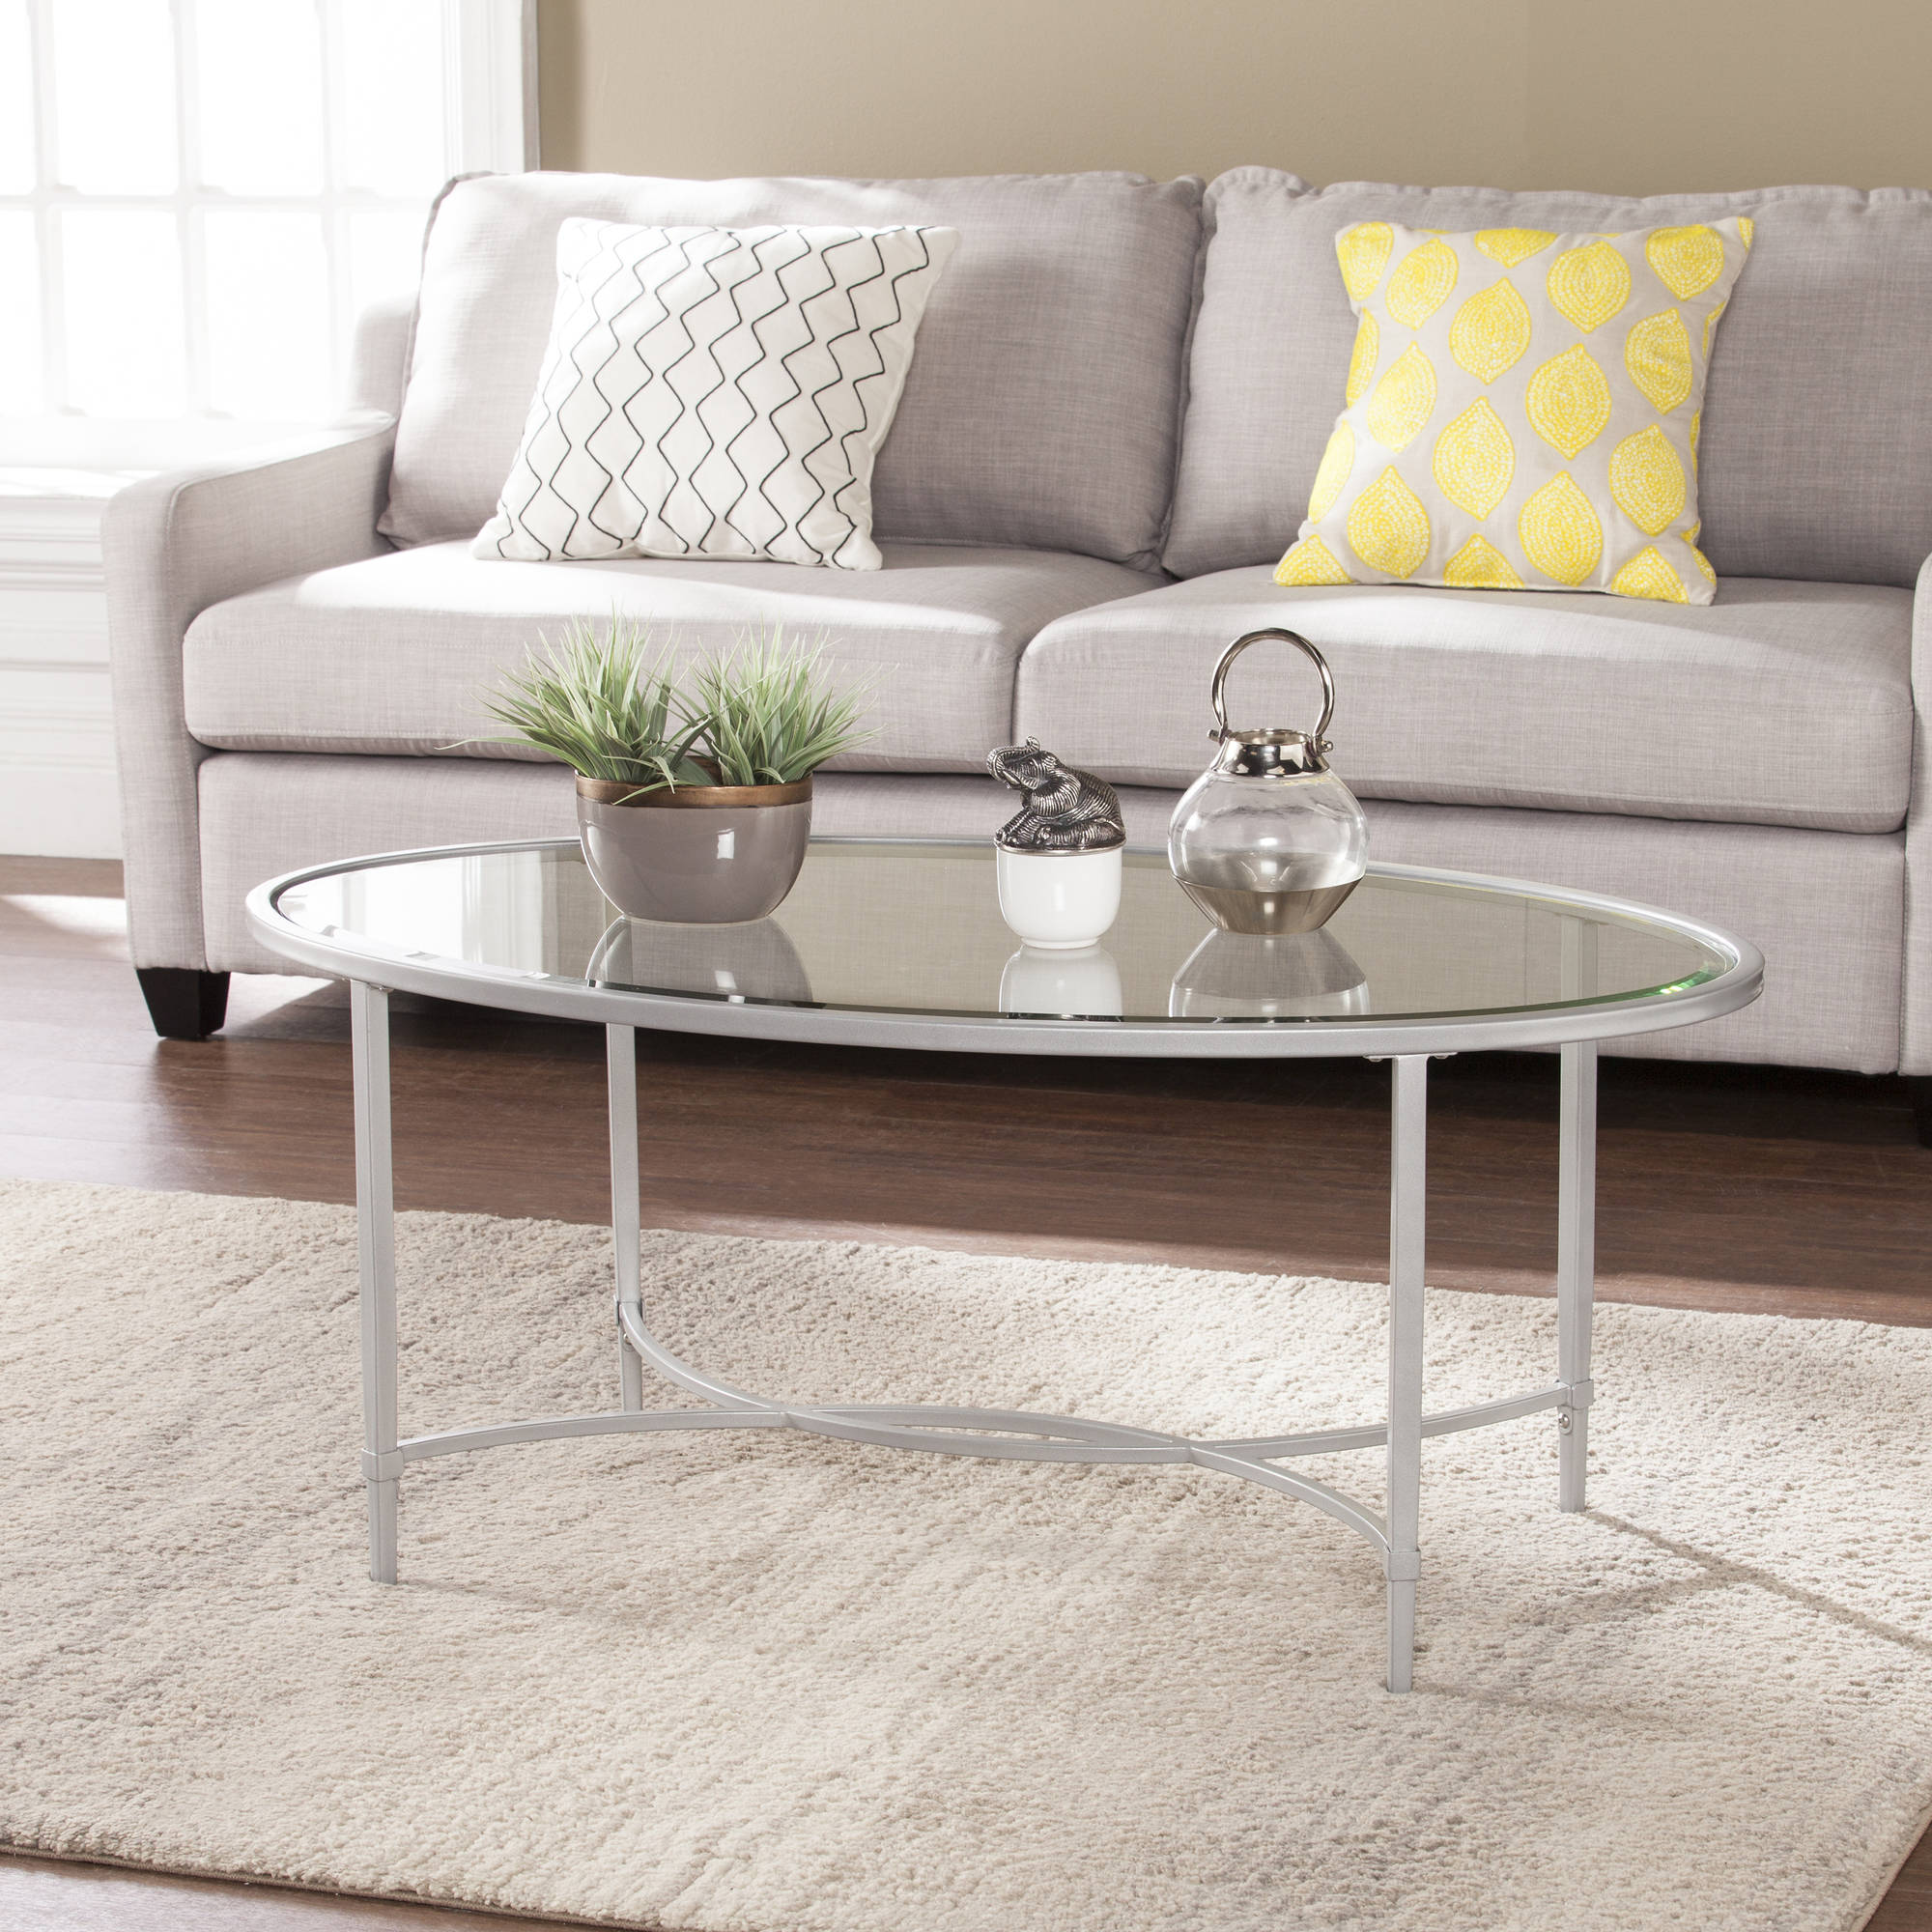 Southern Enterprises Quibilah Metal/Glass Oval Coffee Table, Silver